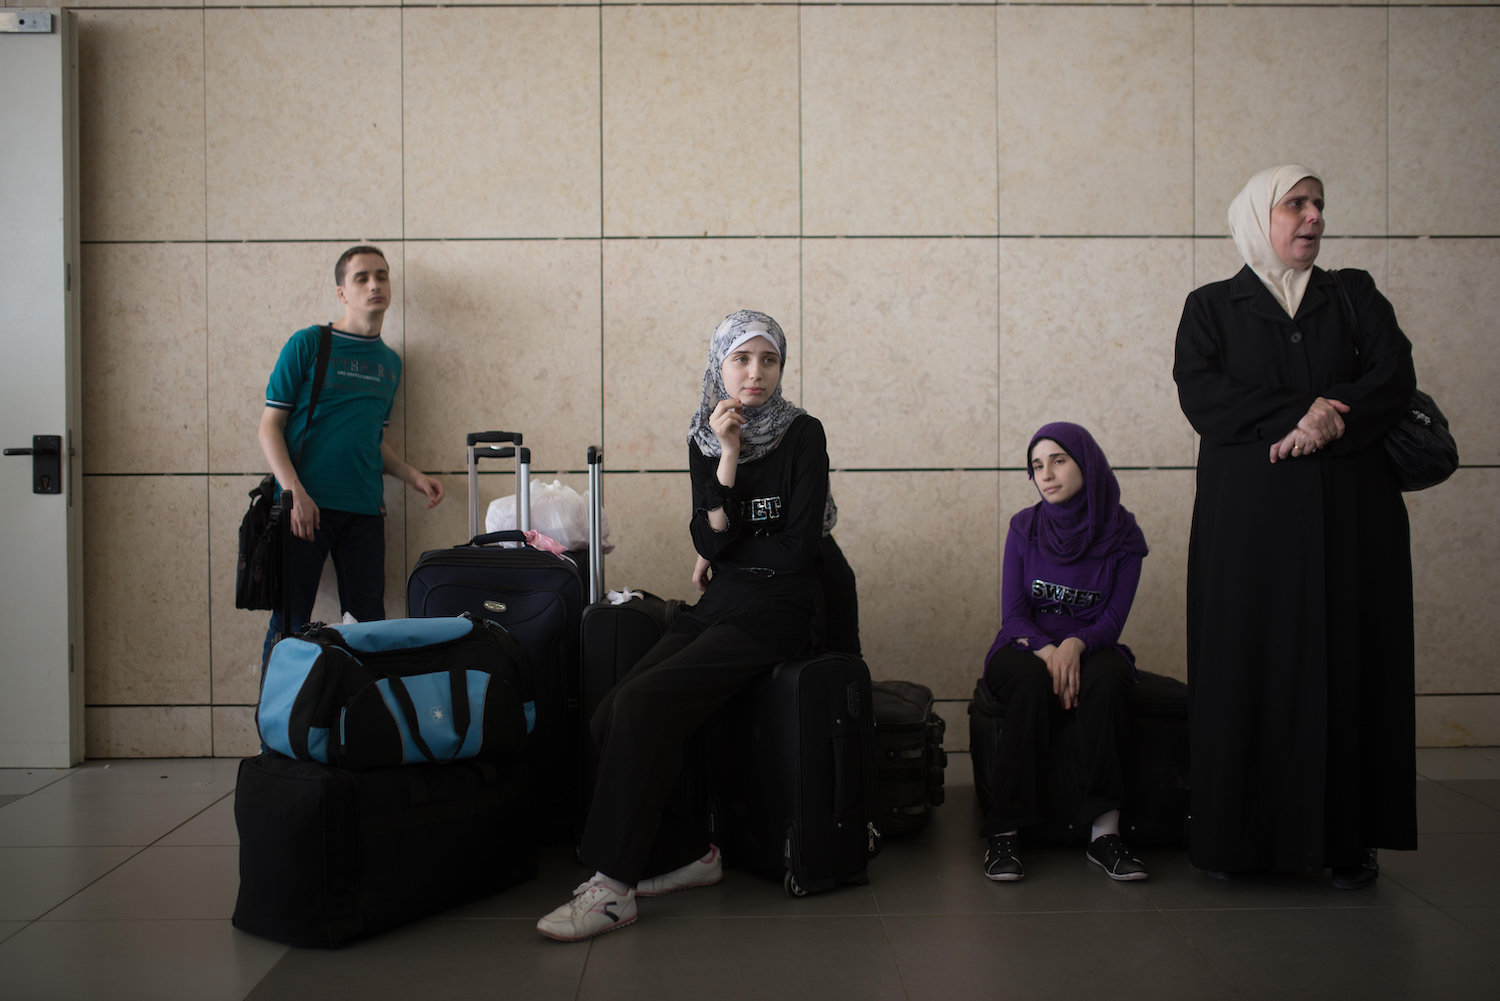 Palestinians wait at the Erez crossing between Gaza and Israel on July 13, 2014. (Flash90)